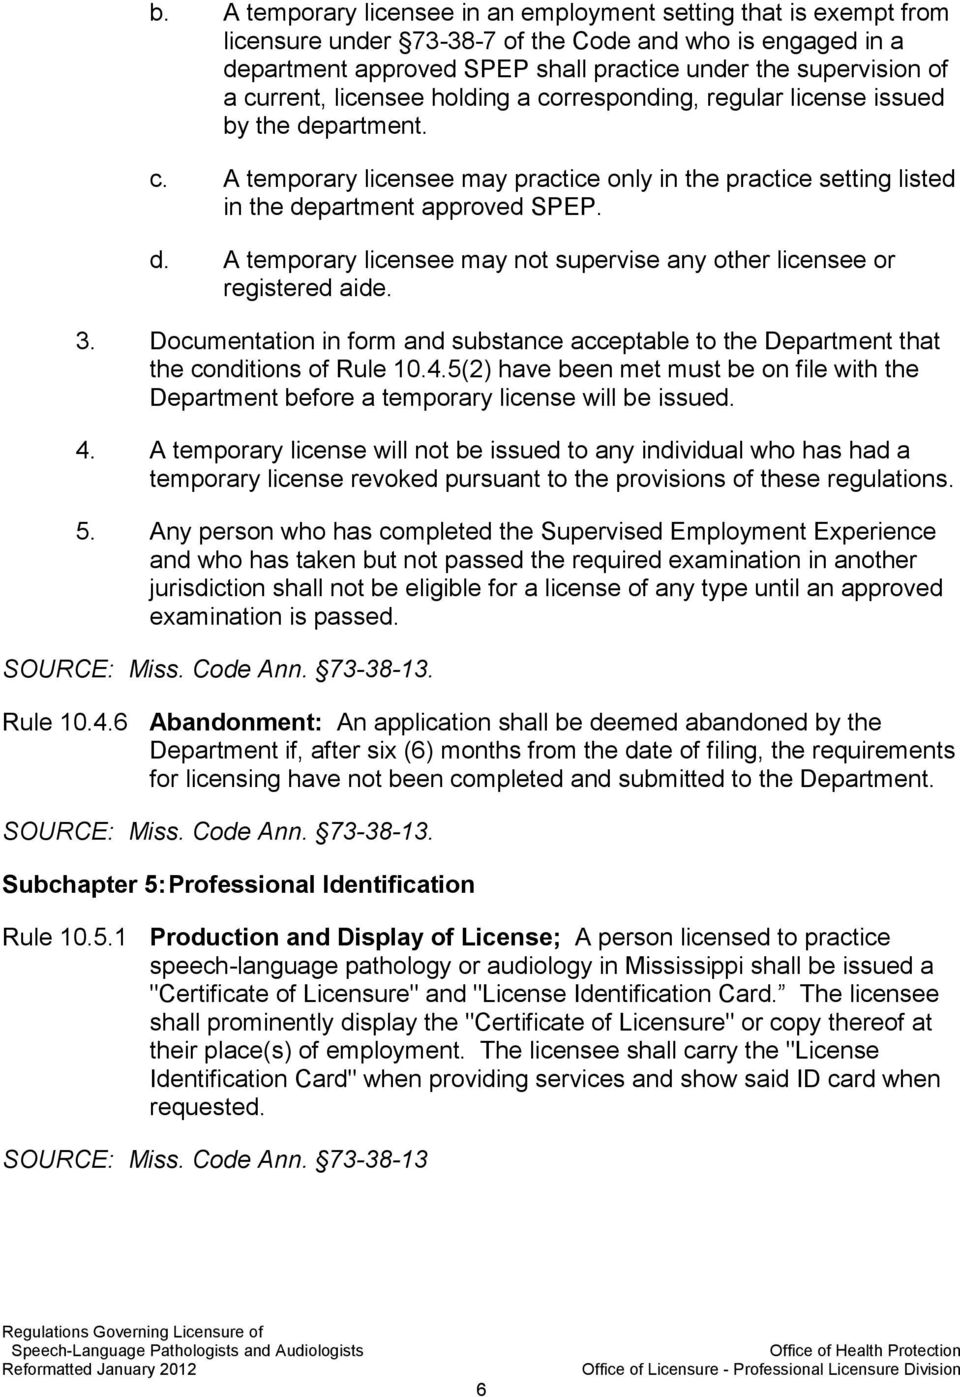 3. Documentation in form and substance acceptable to the Department that the conditions of Rule 10.4.5(2) have been met must be on file with the Department before a temporary license will be issued.